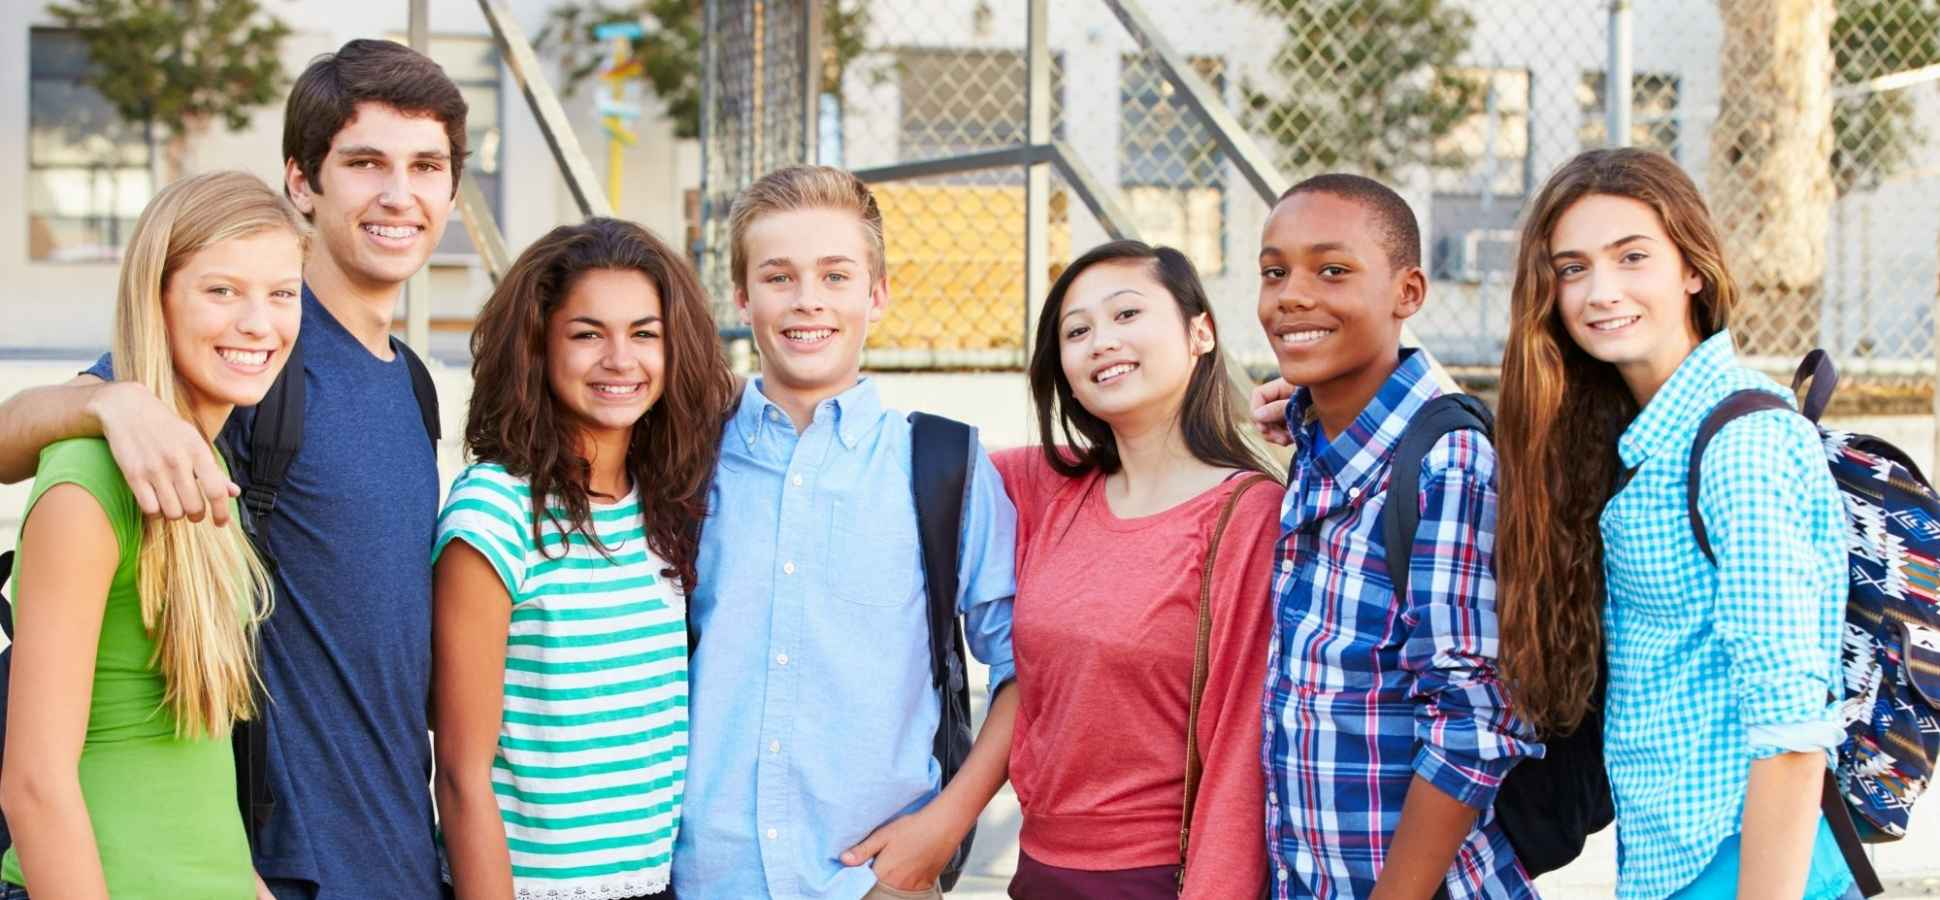 Want to Raise Well-Adjusted Kids? Host an Exchange Student